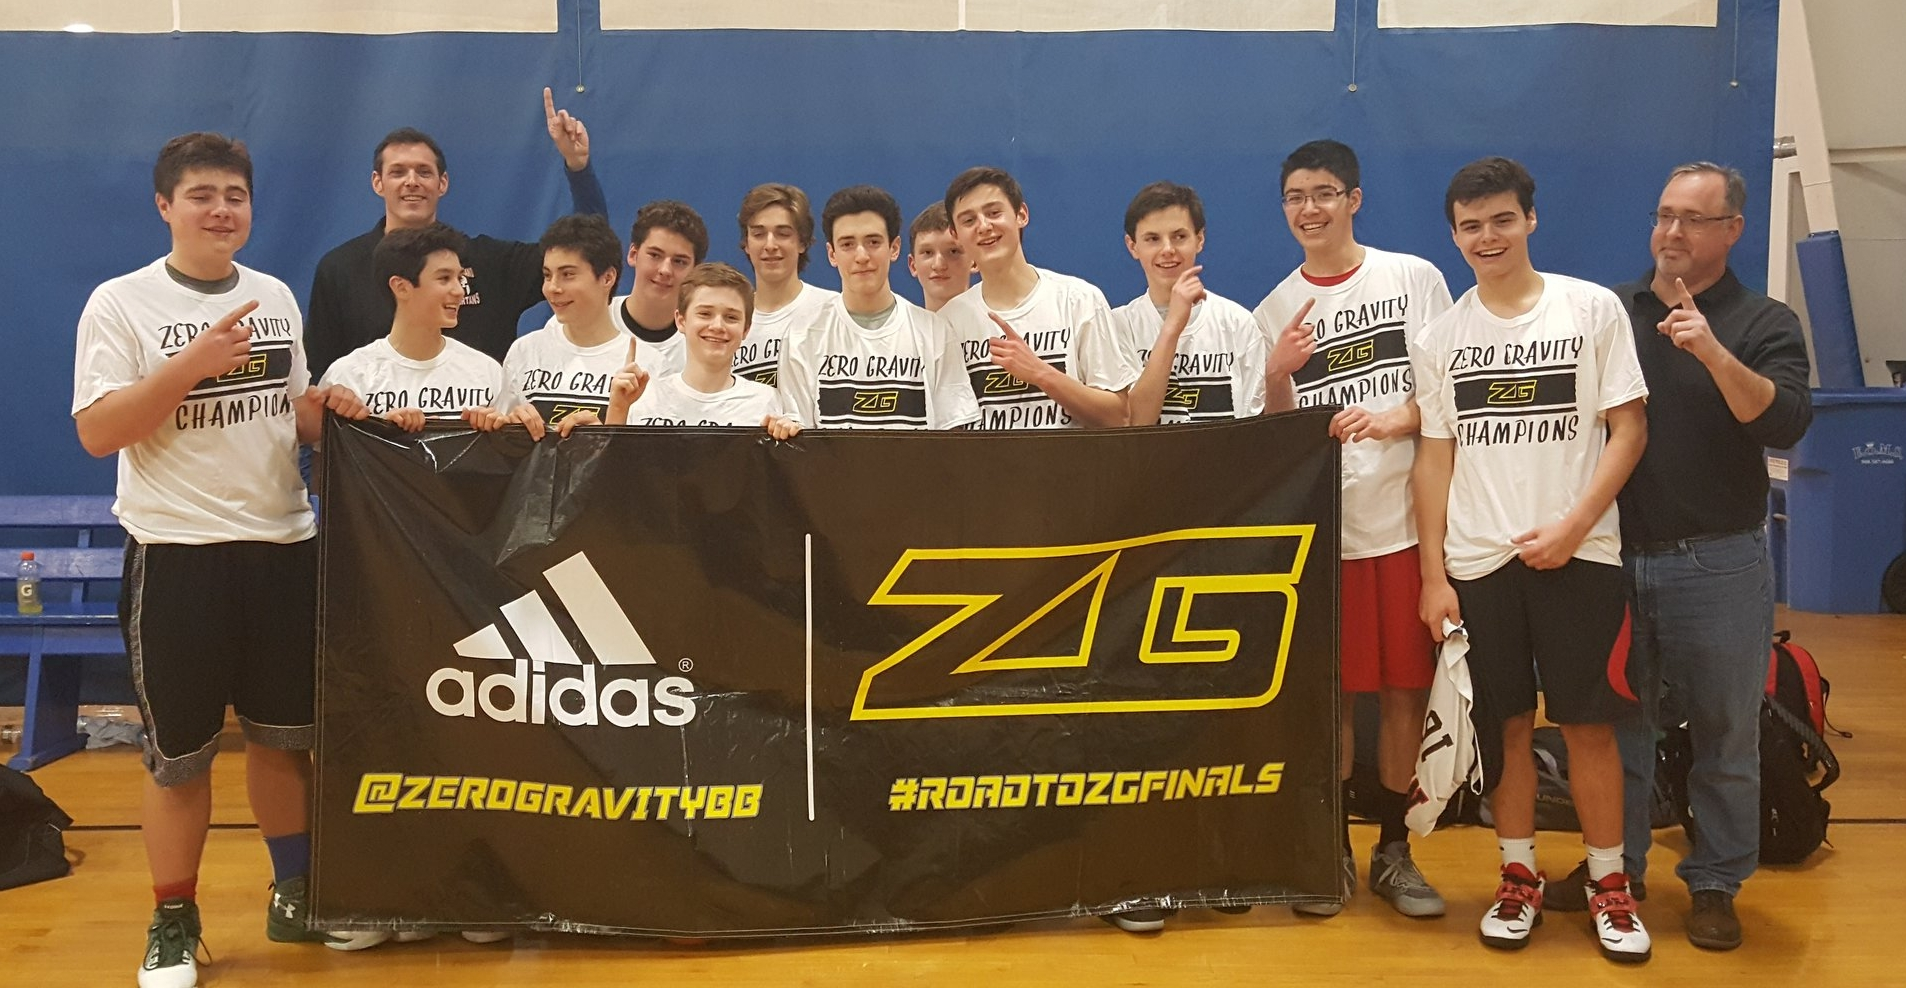 15U - O'Hara celebrating their 2017 ZG Gold Rush Championship in the 9th grade International division after going 6-0 on the weekend!